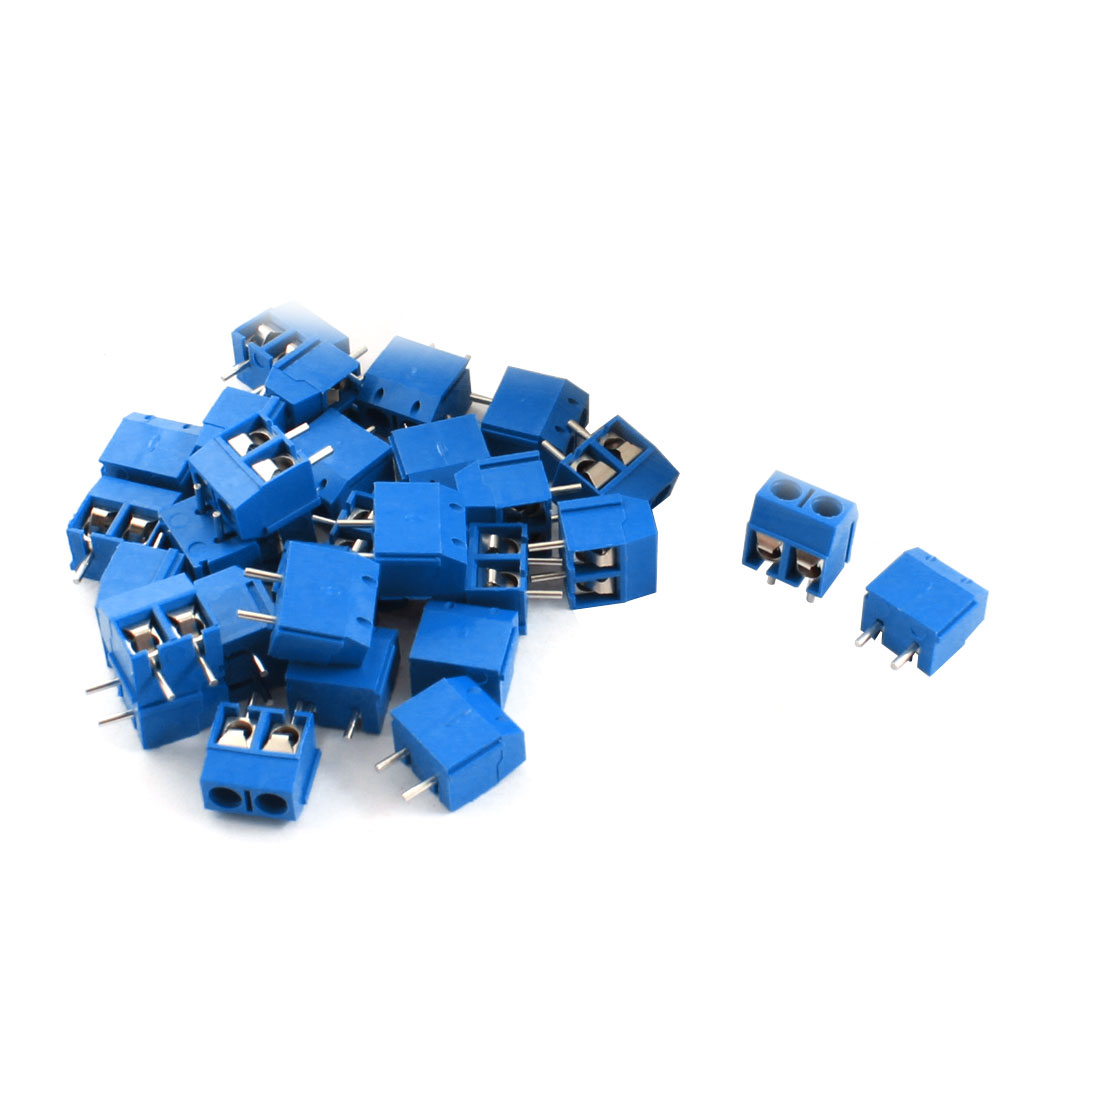 50Pcs 12A 300V 2Pole Barrier Screw Terminal Block Connector 5.08mm Pitch Blue